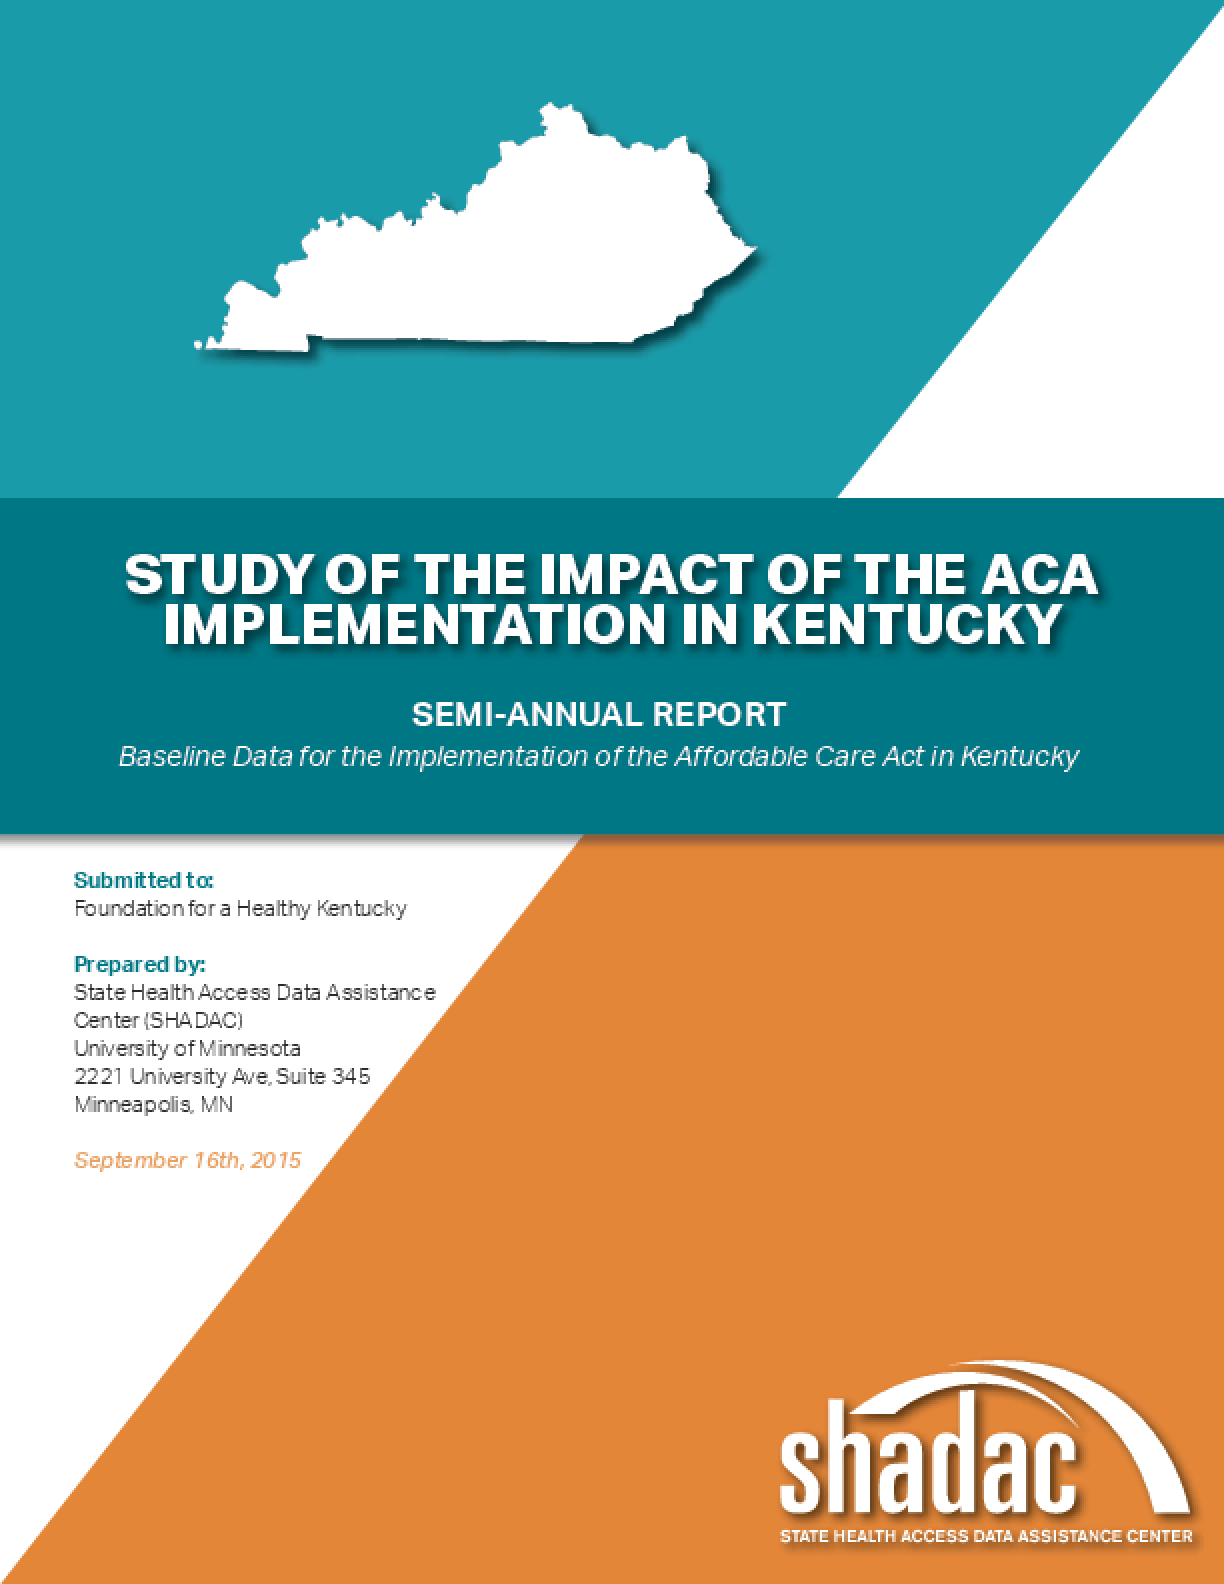 Study of the Impact of the ACA Implementation in Kentucky: Semi-Annual Report